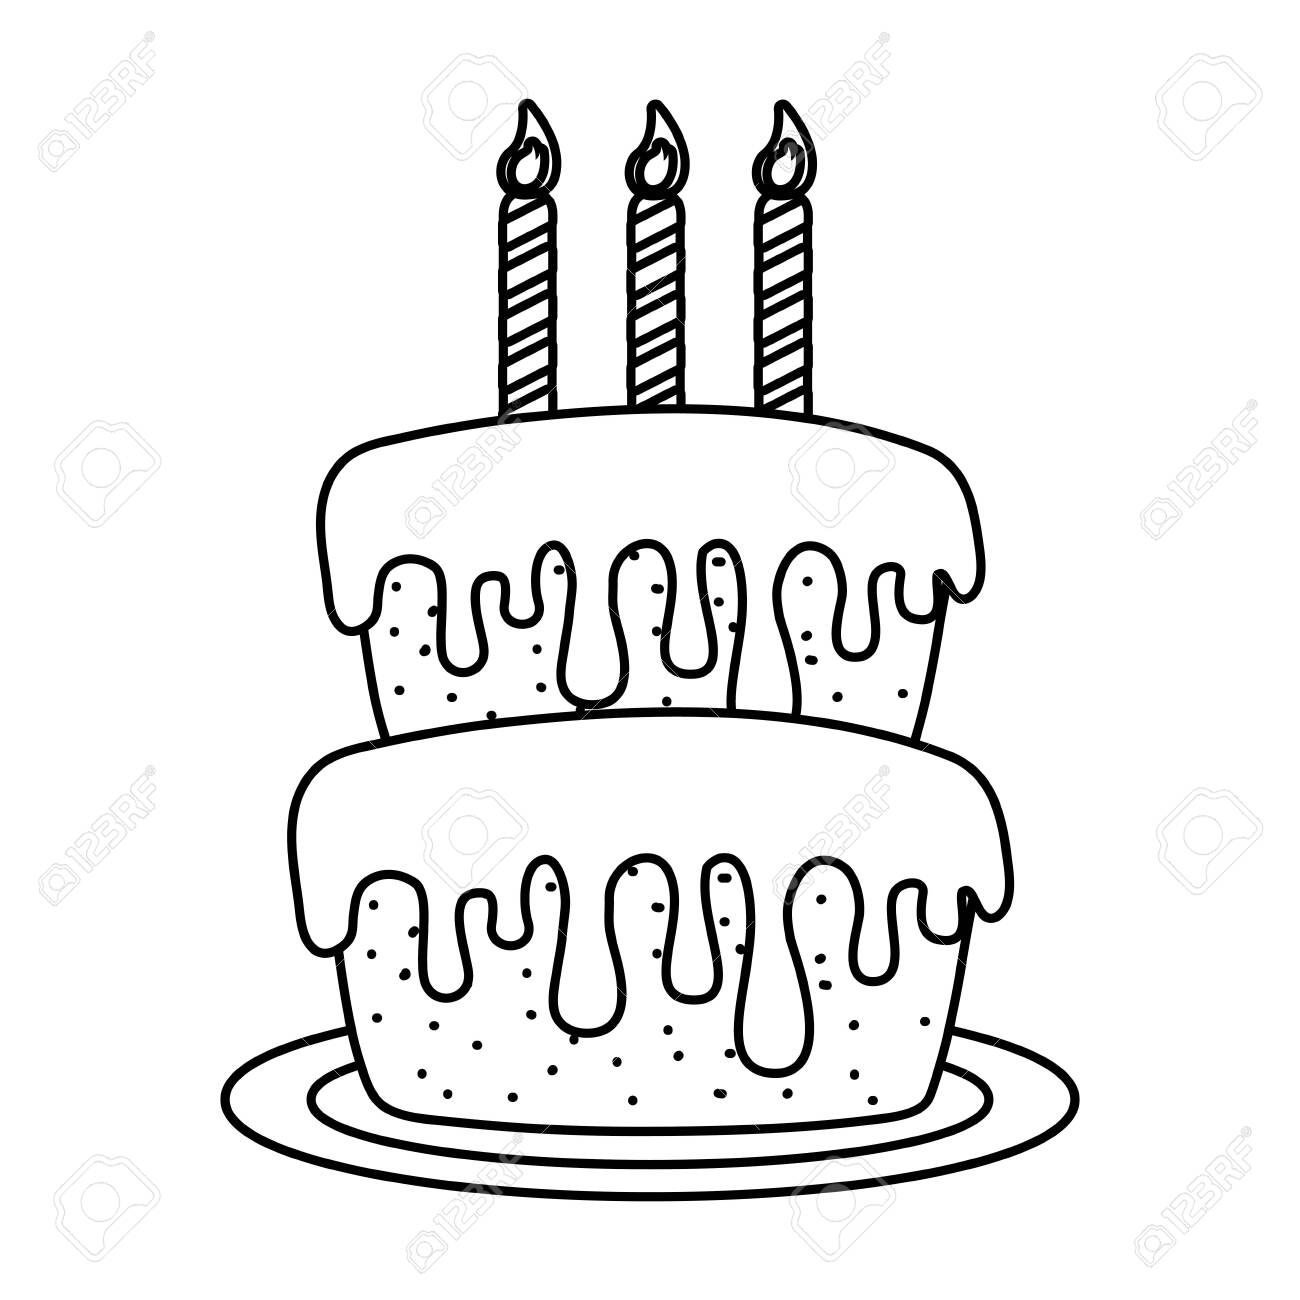 Birthday Cake With Candles Black And White Royalty Free Cliparts Vectors And Stock Illustration Image 134750458